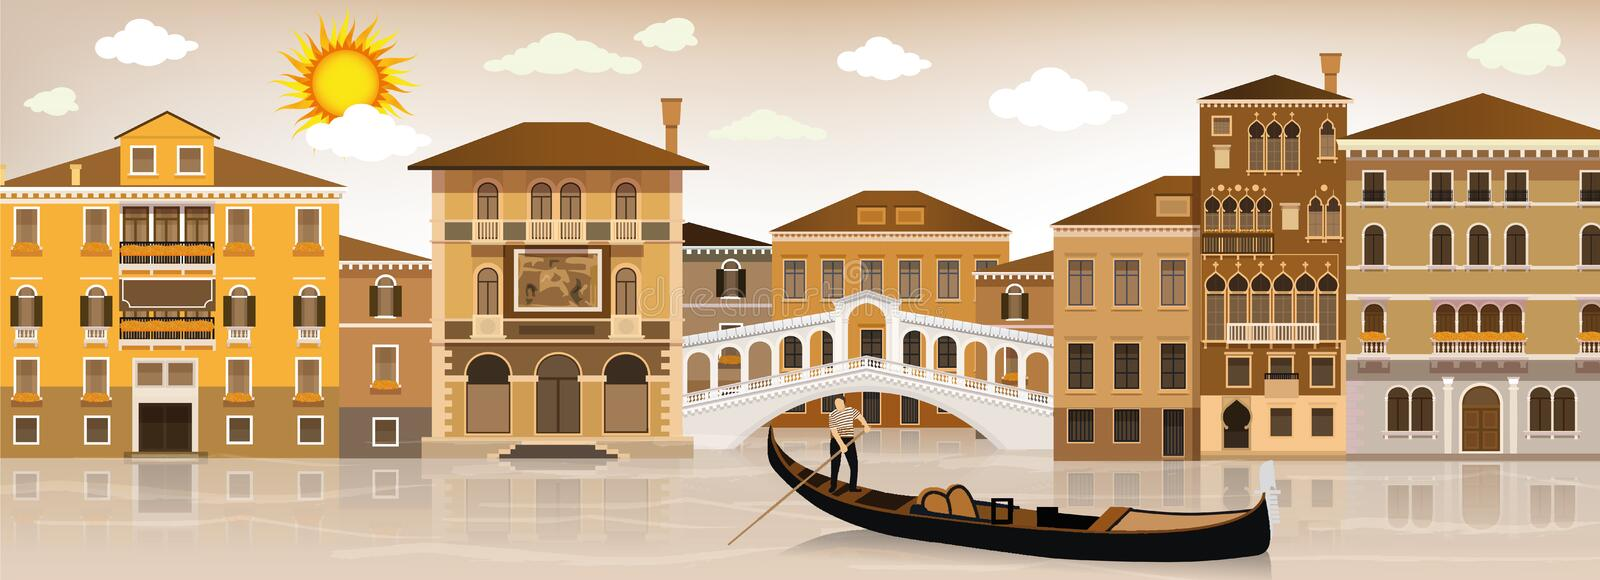 A Venezia illustrazione di stock